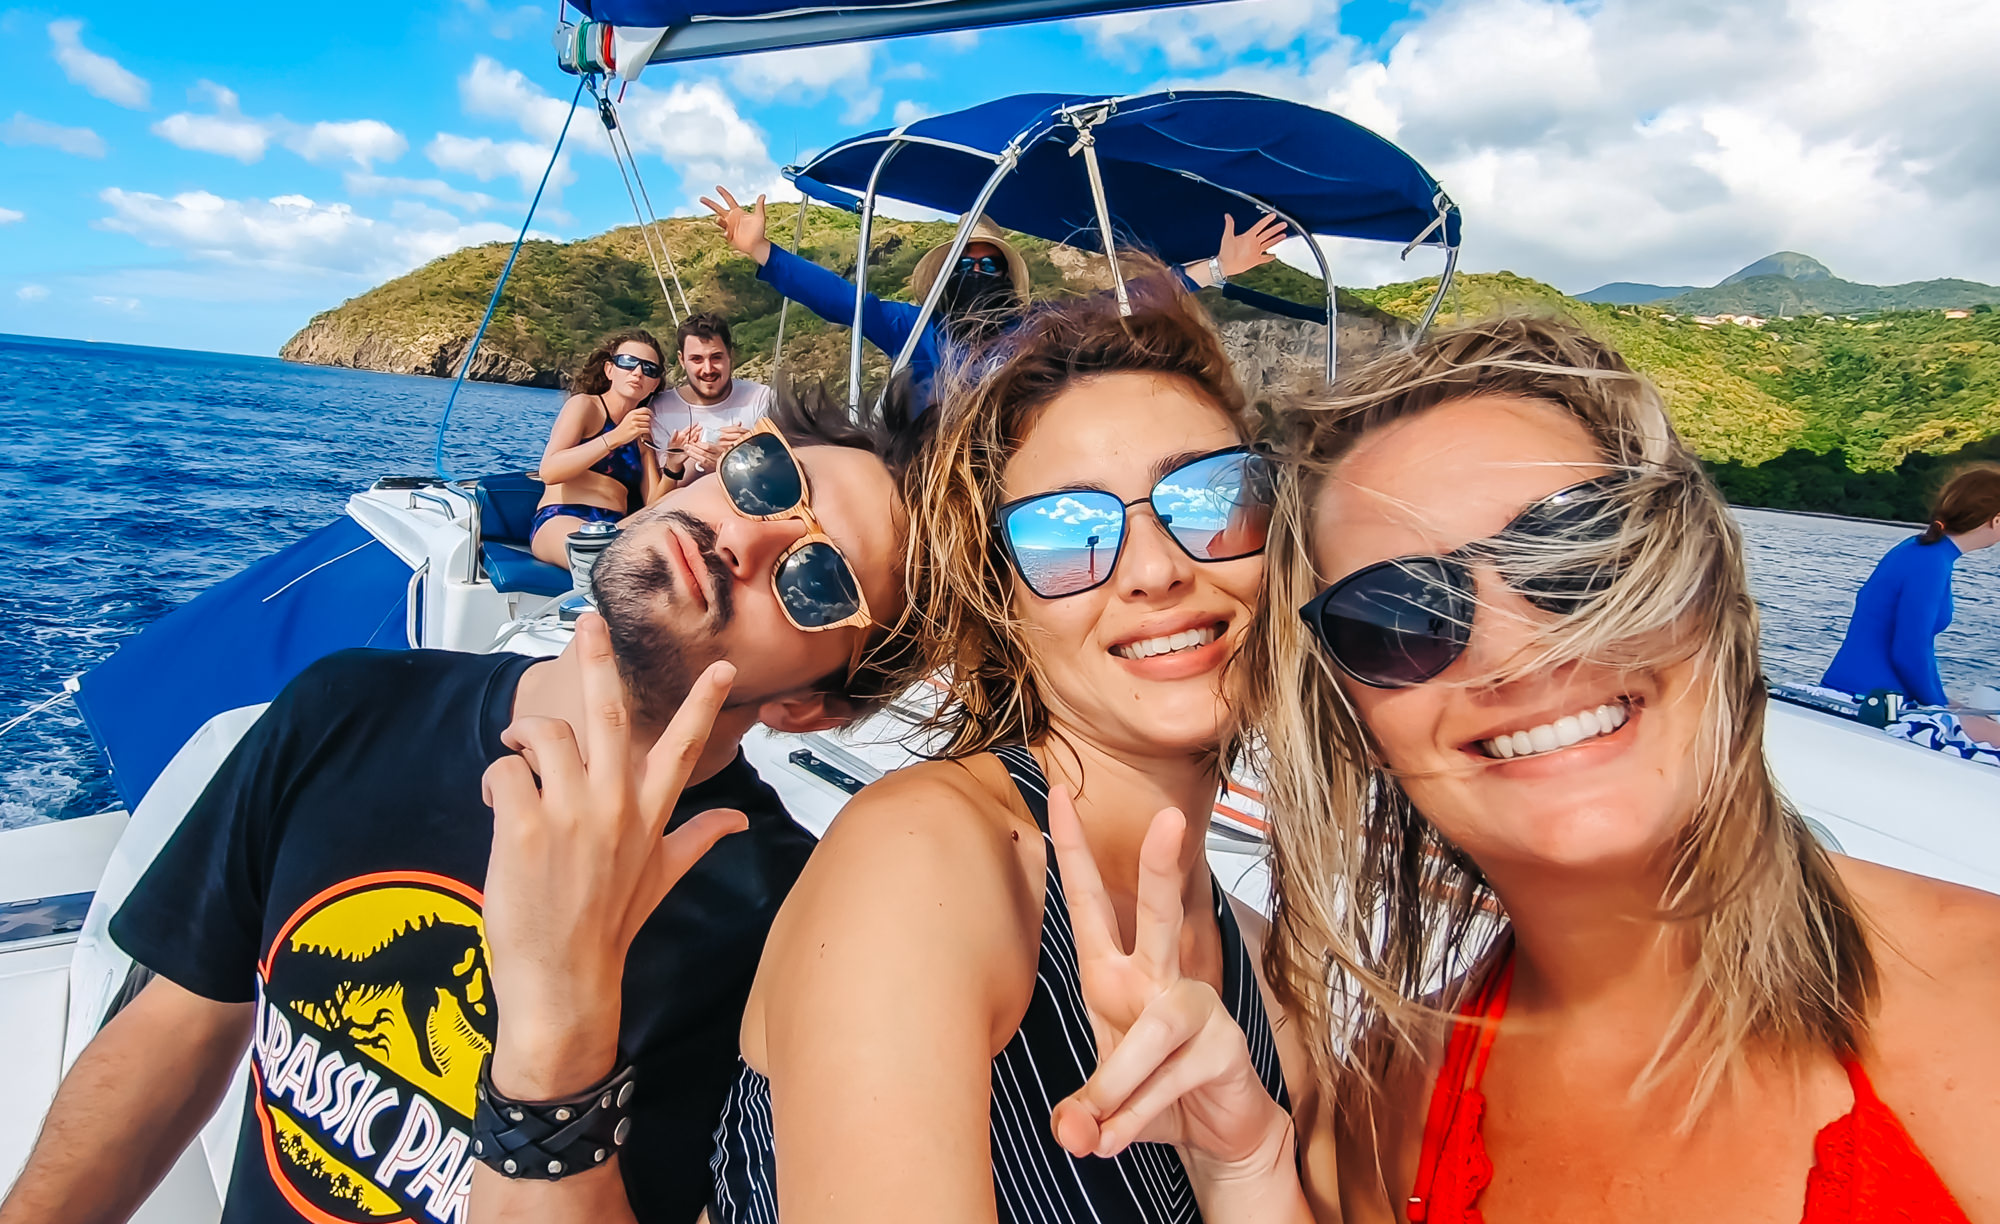 On board the catamaran with my friend, Alyssa, and my new French friend, Guillaume